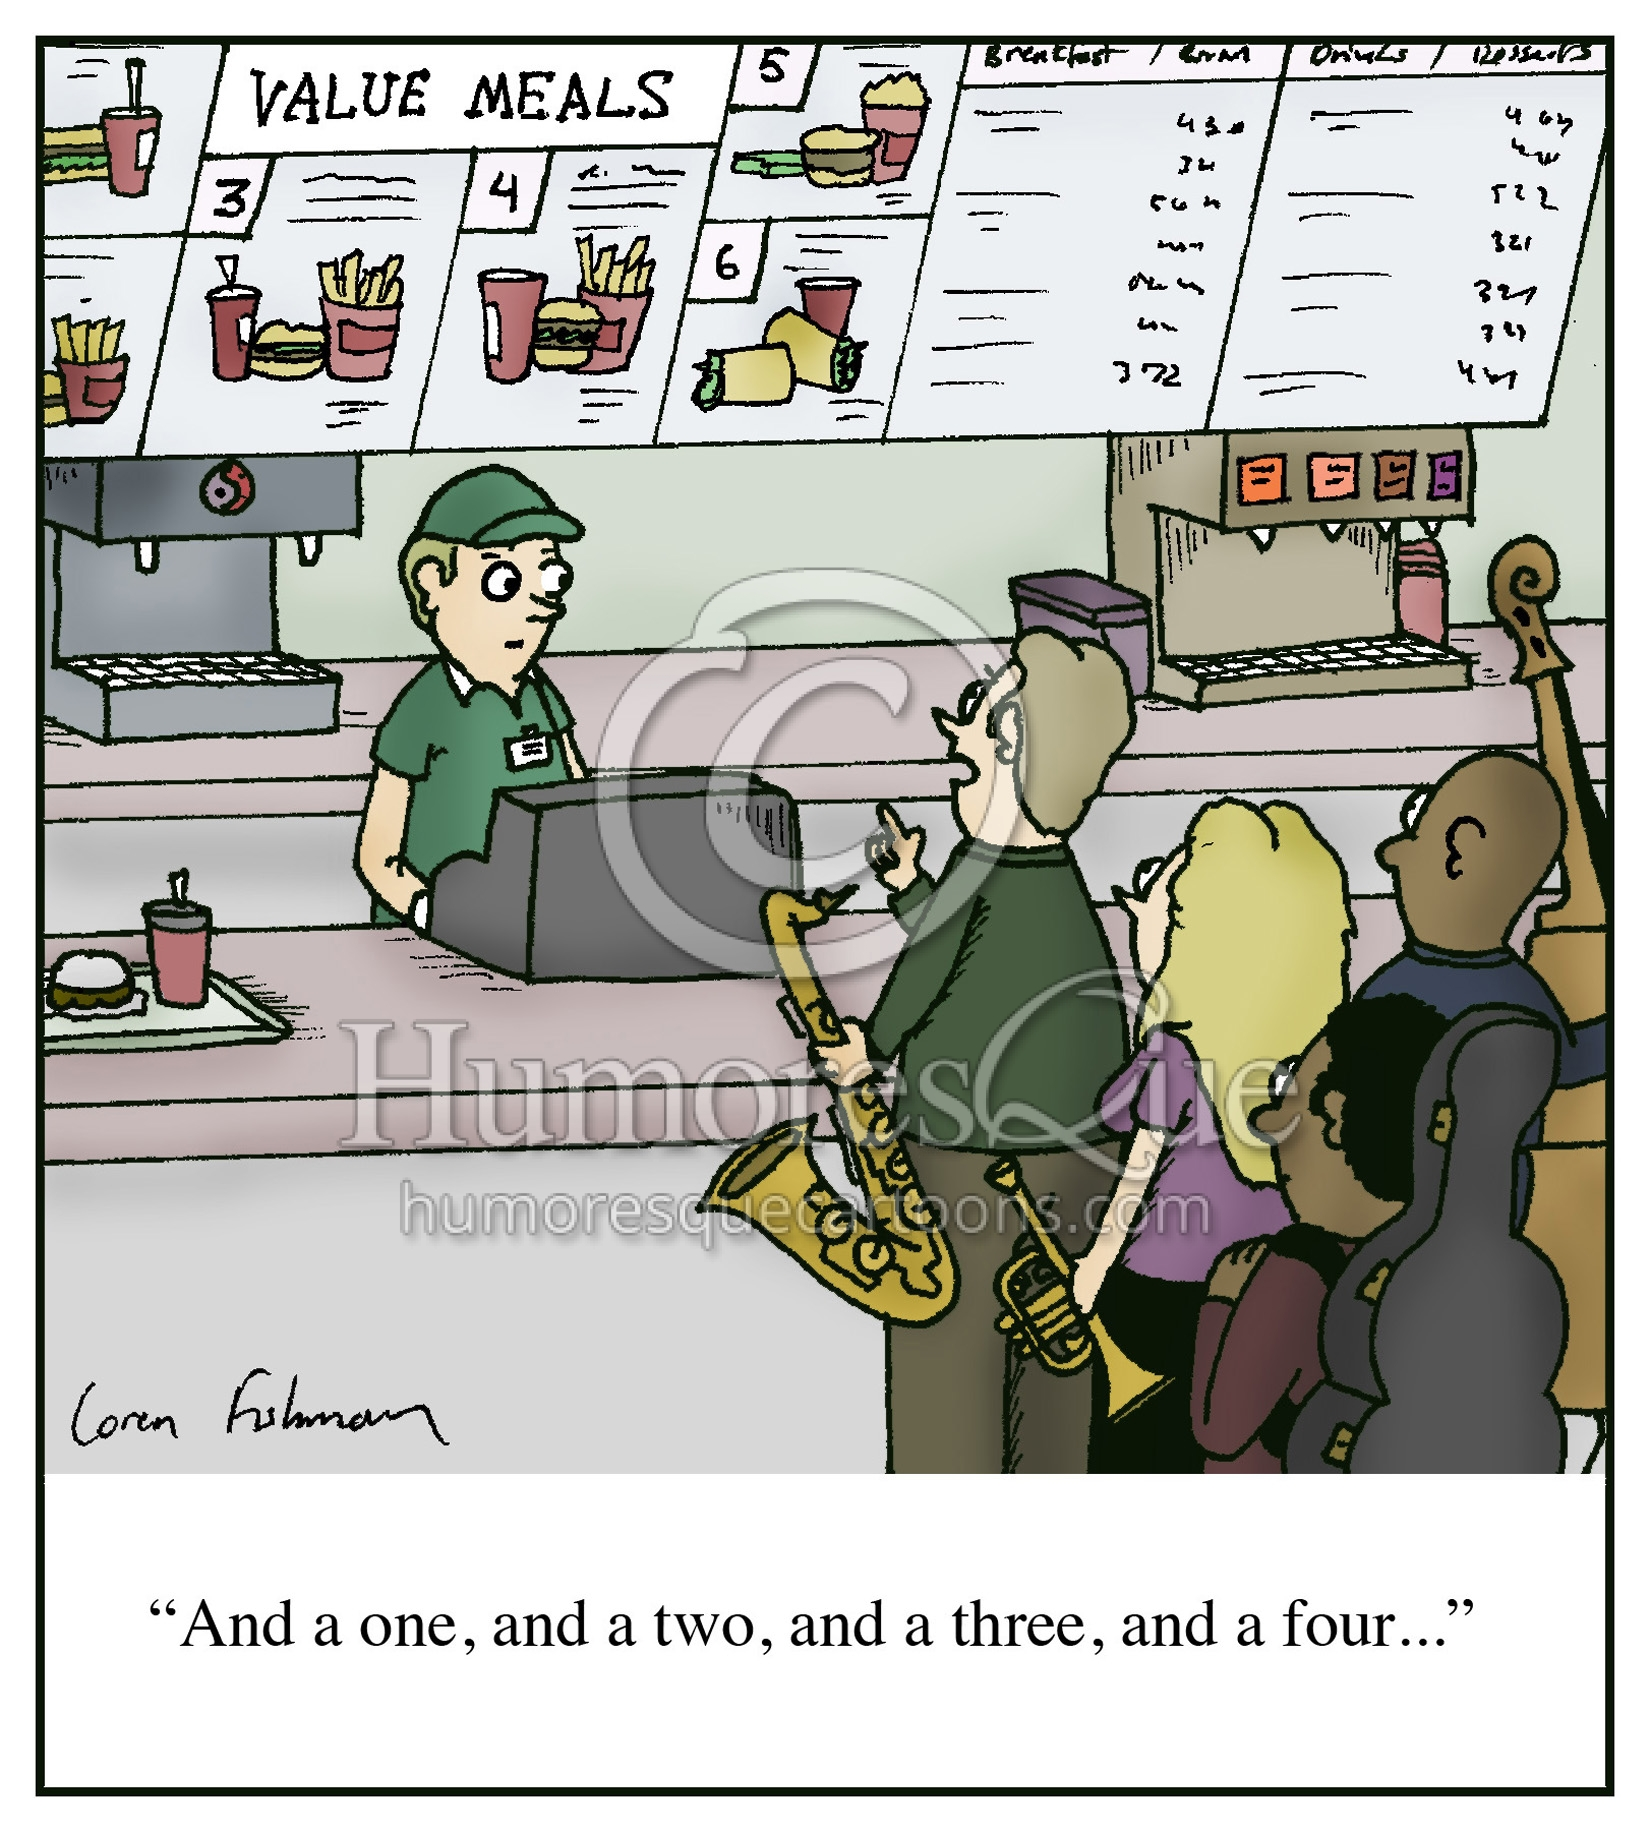 jazz combo meal one two three four cartoon